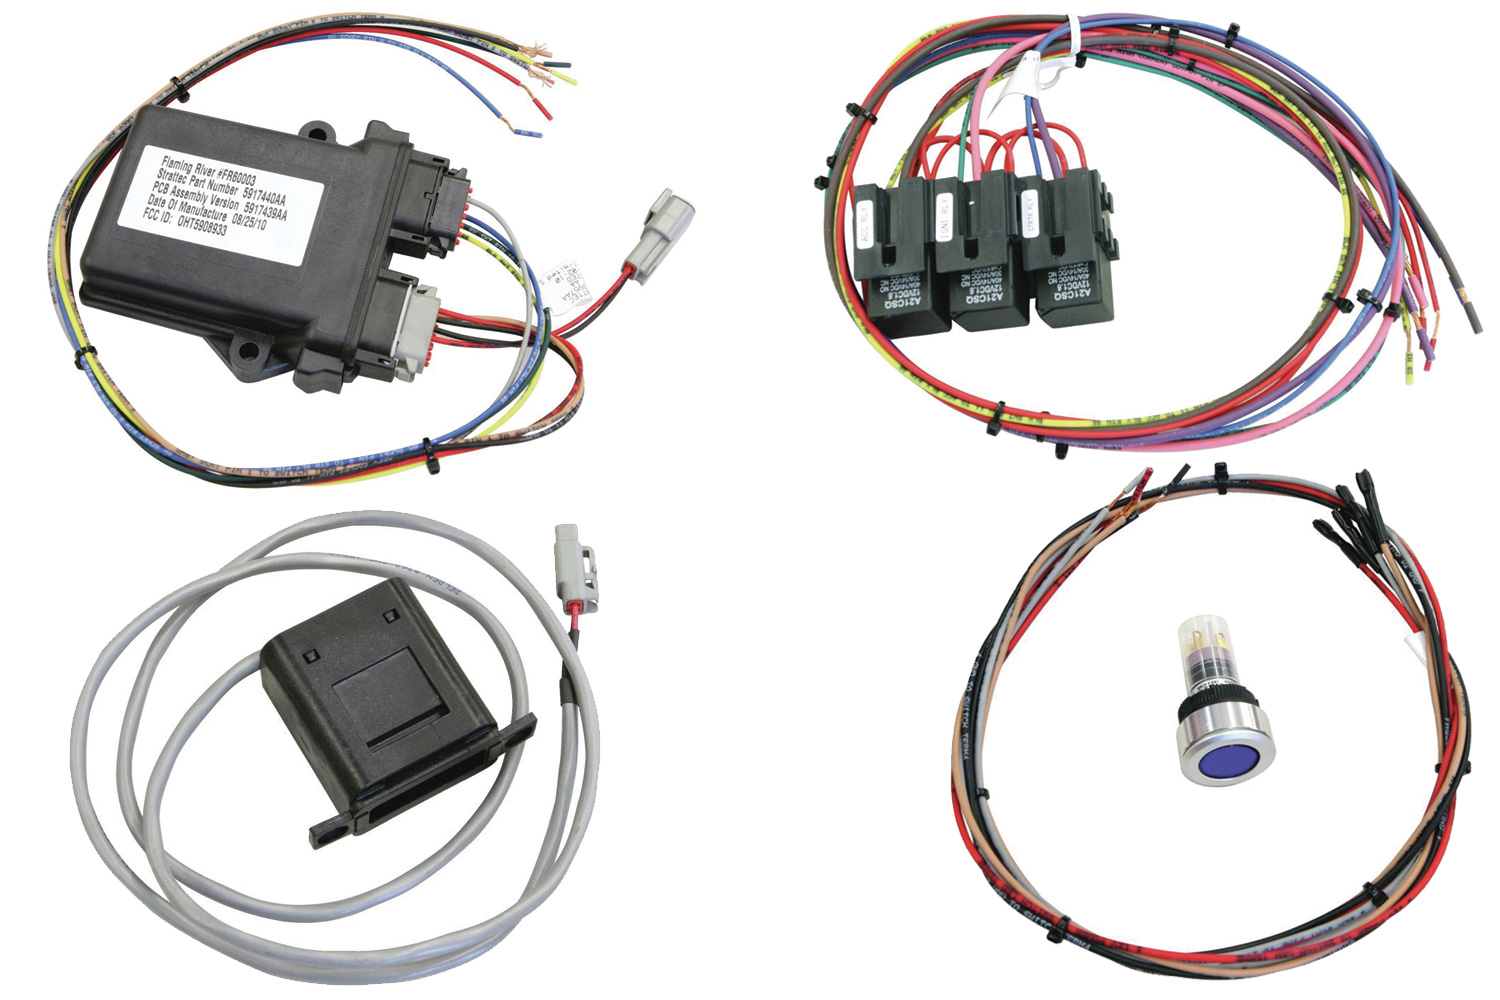 1-4. Flaming River offers a few different push-button start kits with a variety of different functions. We're using the keyless ignition kit that incorporates an in-dash docking station and keyless entry. The kit consists of a near reader module, a relay harness, docking station, push-button switch, and remote keyless entry system. The near reader module is the brain behind the system, communicating between the push-button switch and the respective functions (start, accessory, etc.) via the relay harness, which protects the switch and module so that they don't bear the brunt of the electrical load.